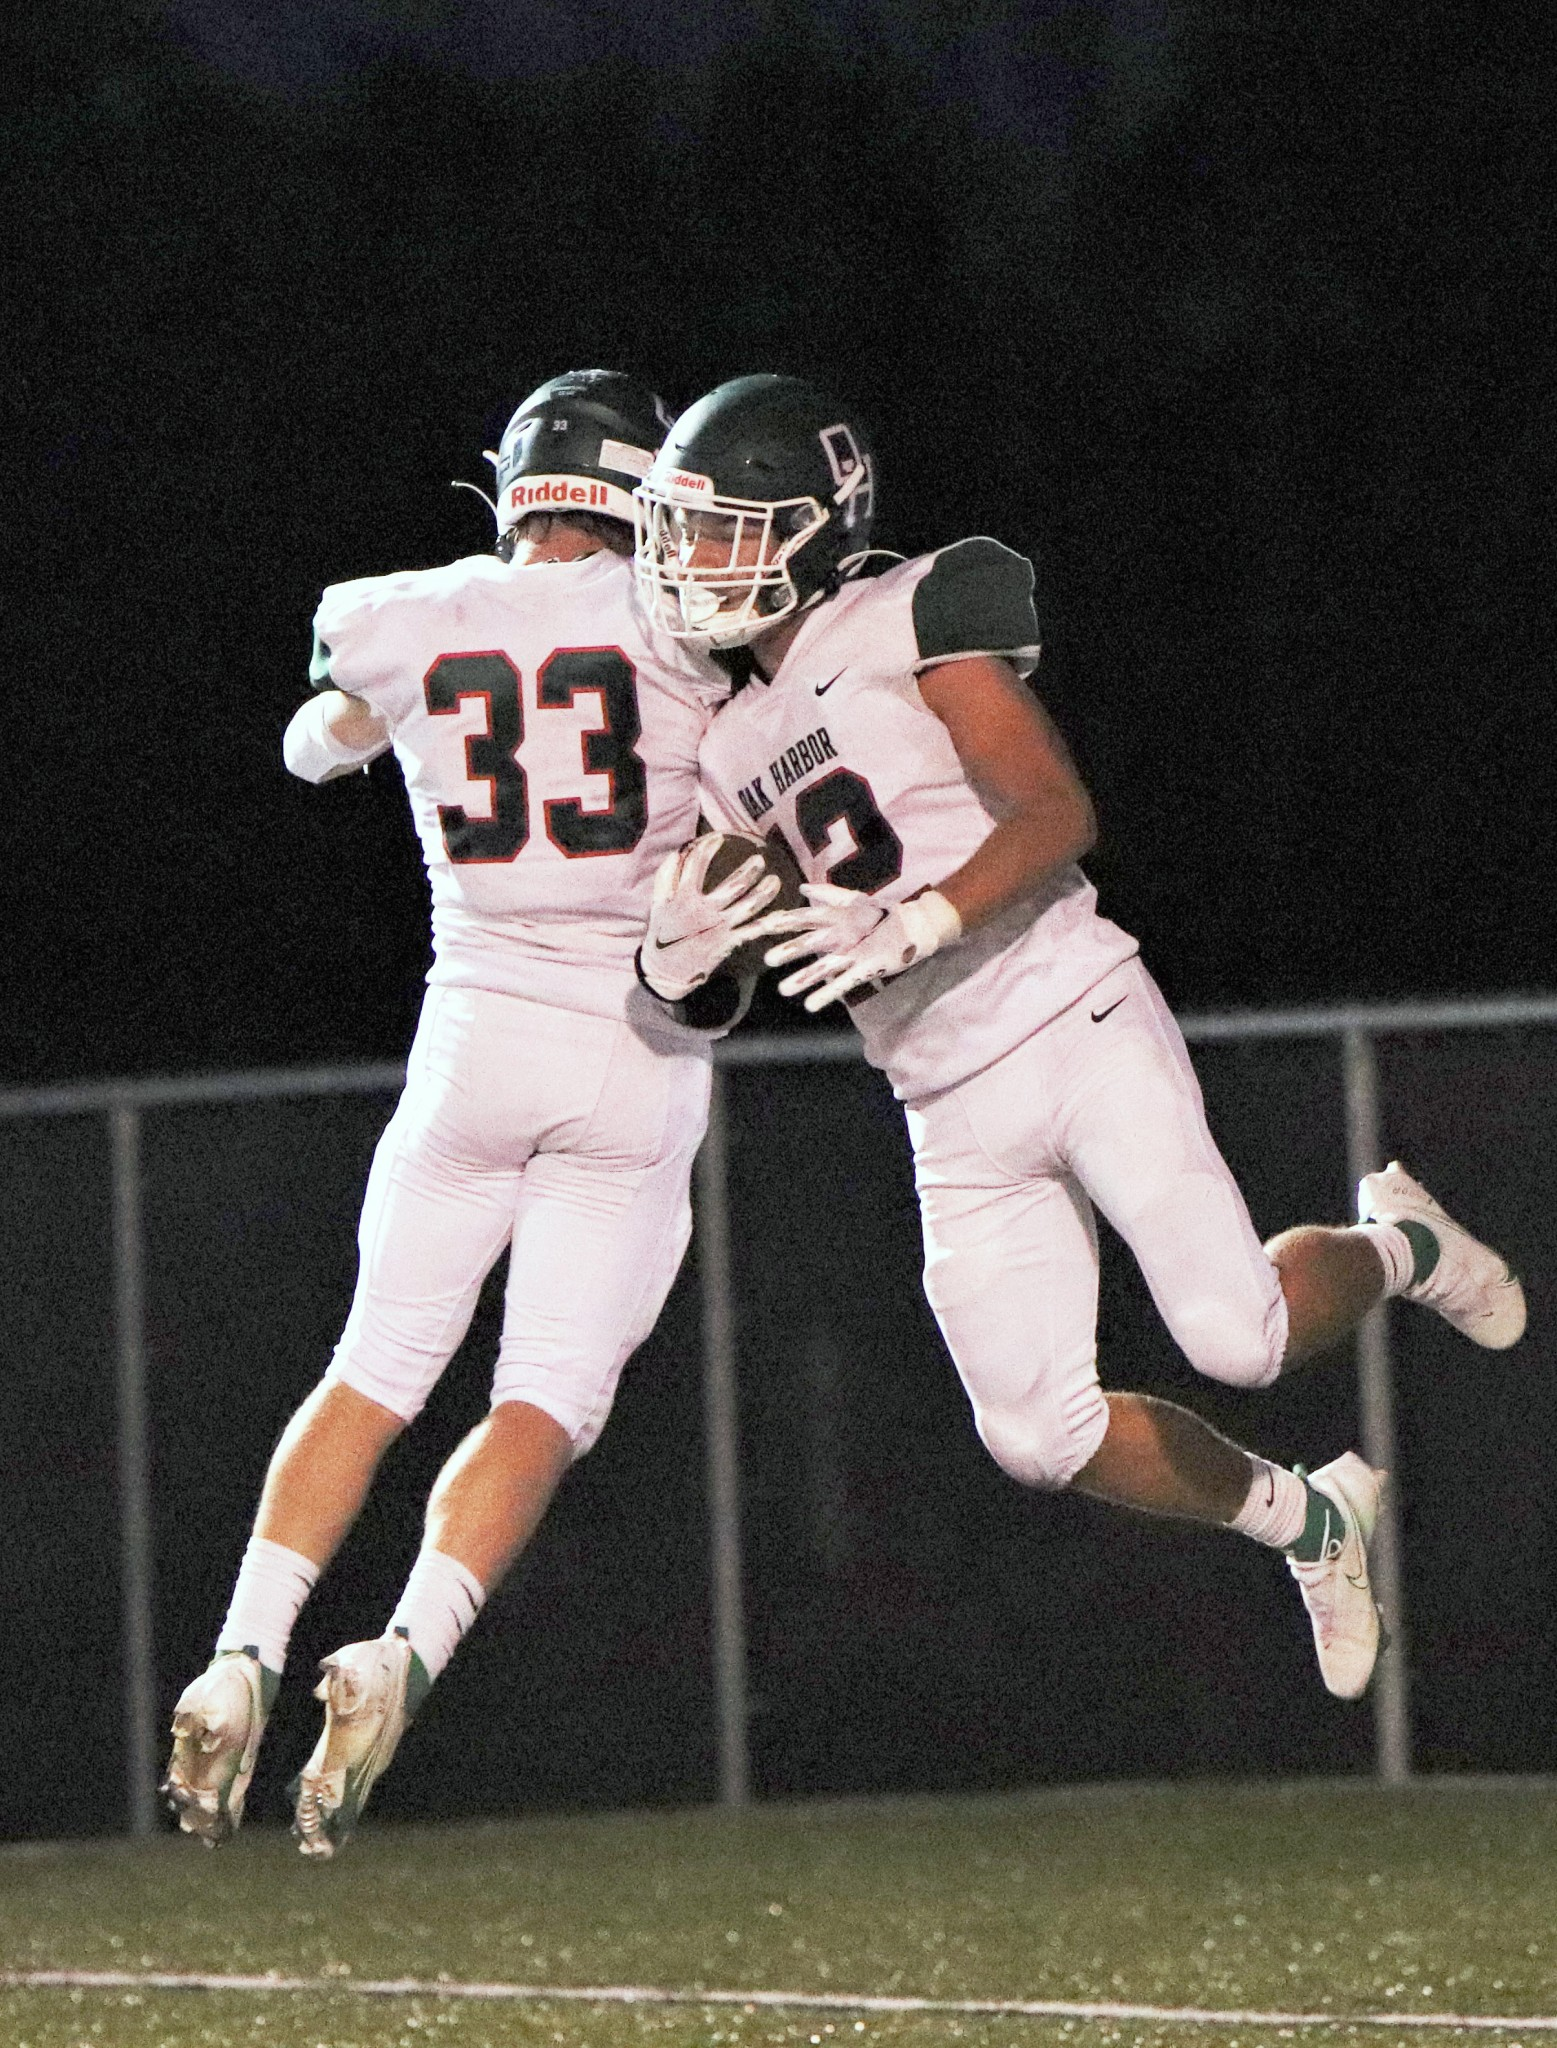 fter senior running back Eli Sherman scores in the Rockets' 69-17 Division V playoff rout over visiting Doylestown Chippewa, he and senior wide receiver  Nicholas Wirkner (33) celebrate in the end zone (right). (Photo by Laura Bolander)